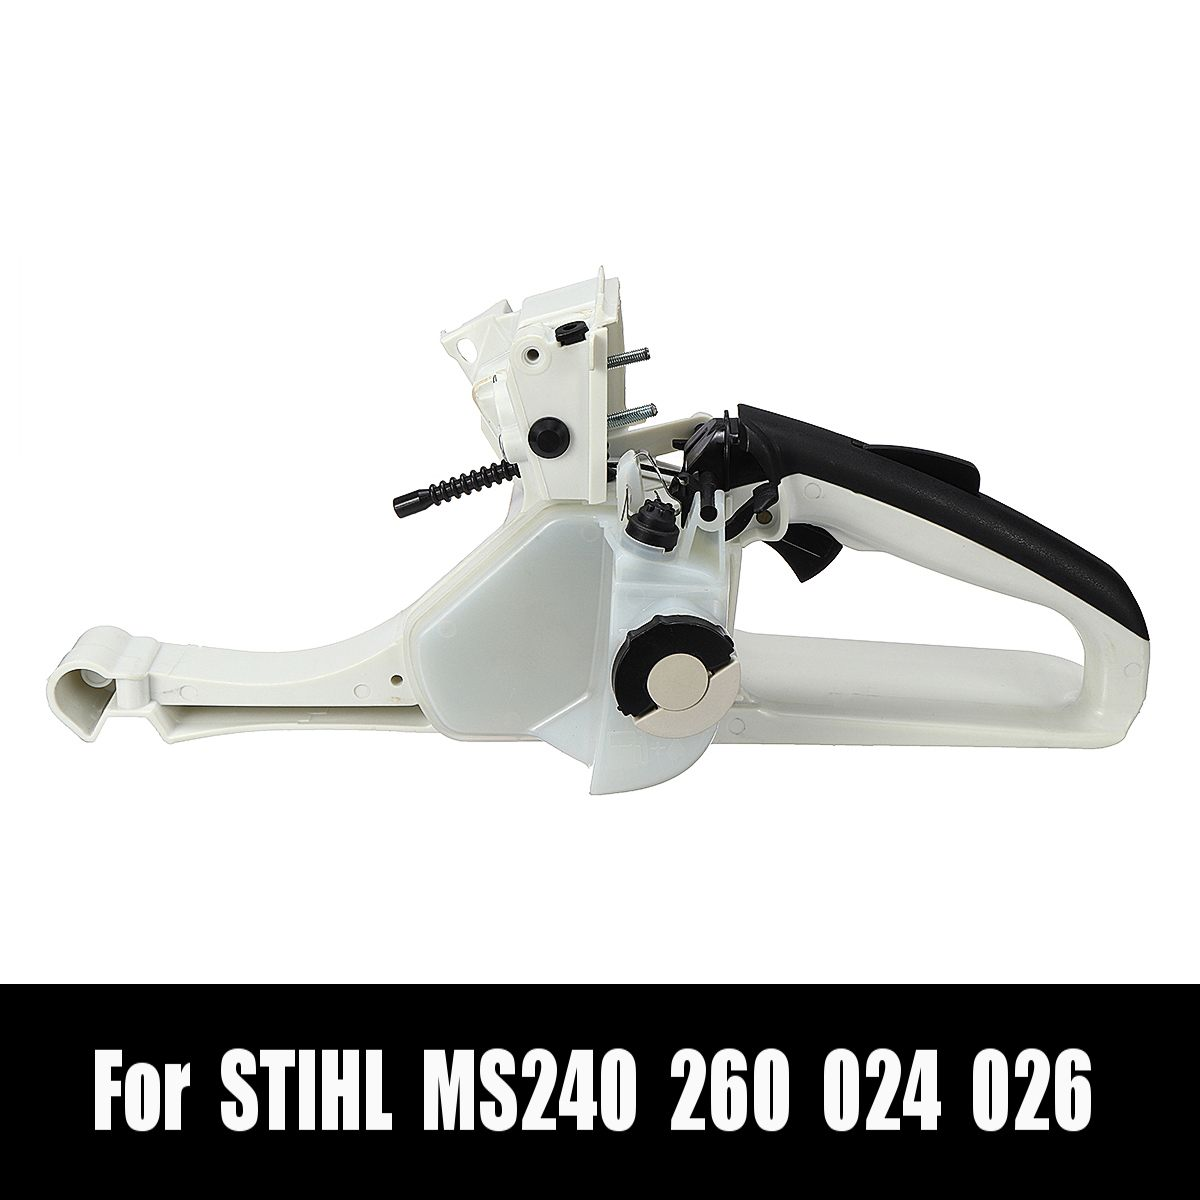 Gas Fuel Tank Rear Handle Alloy+Plastic For STIHL MS260 MS240 026 024 Chainsaw 1121 350 0829 40x16x12.5cm Garden Power Tools